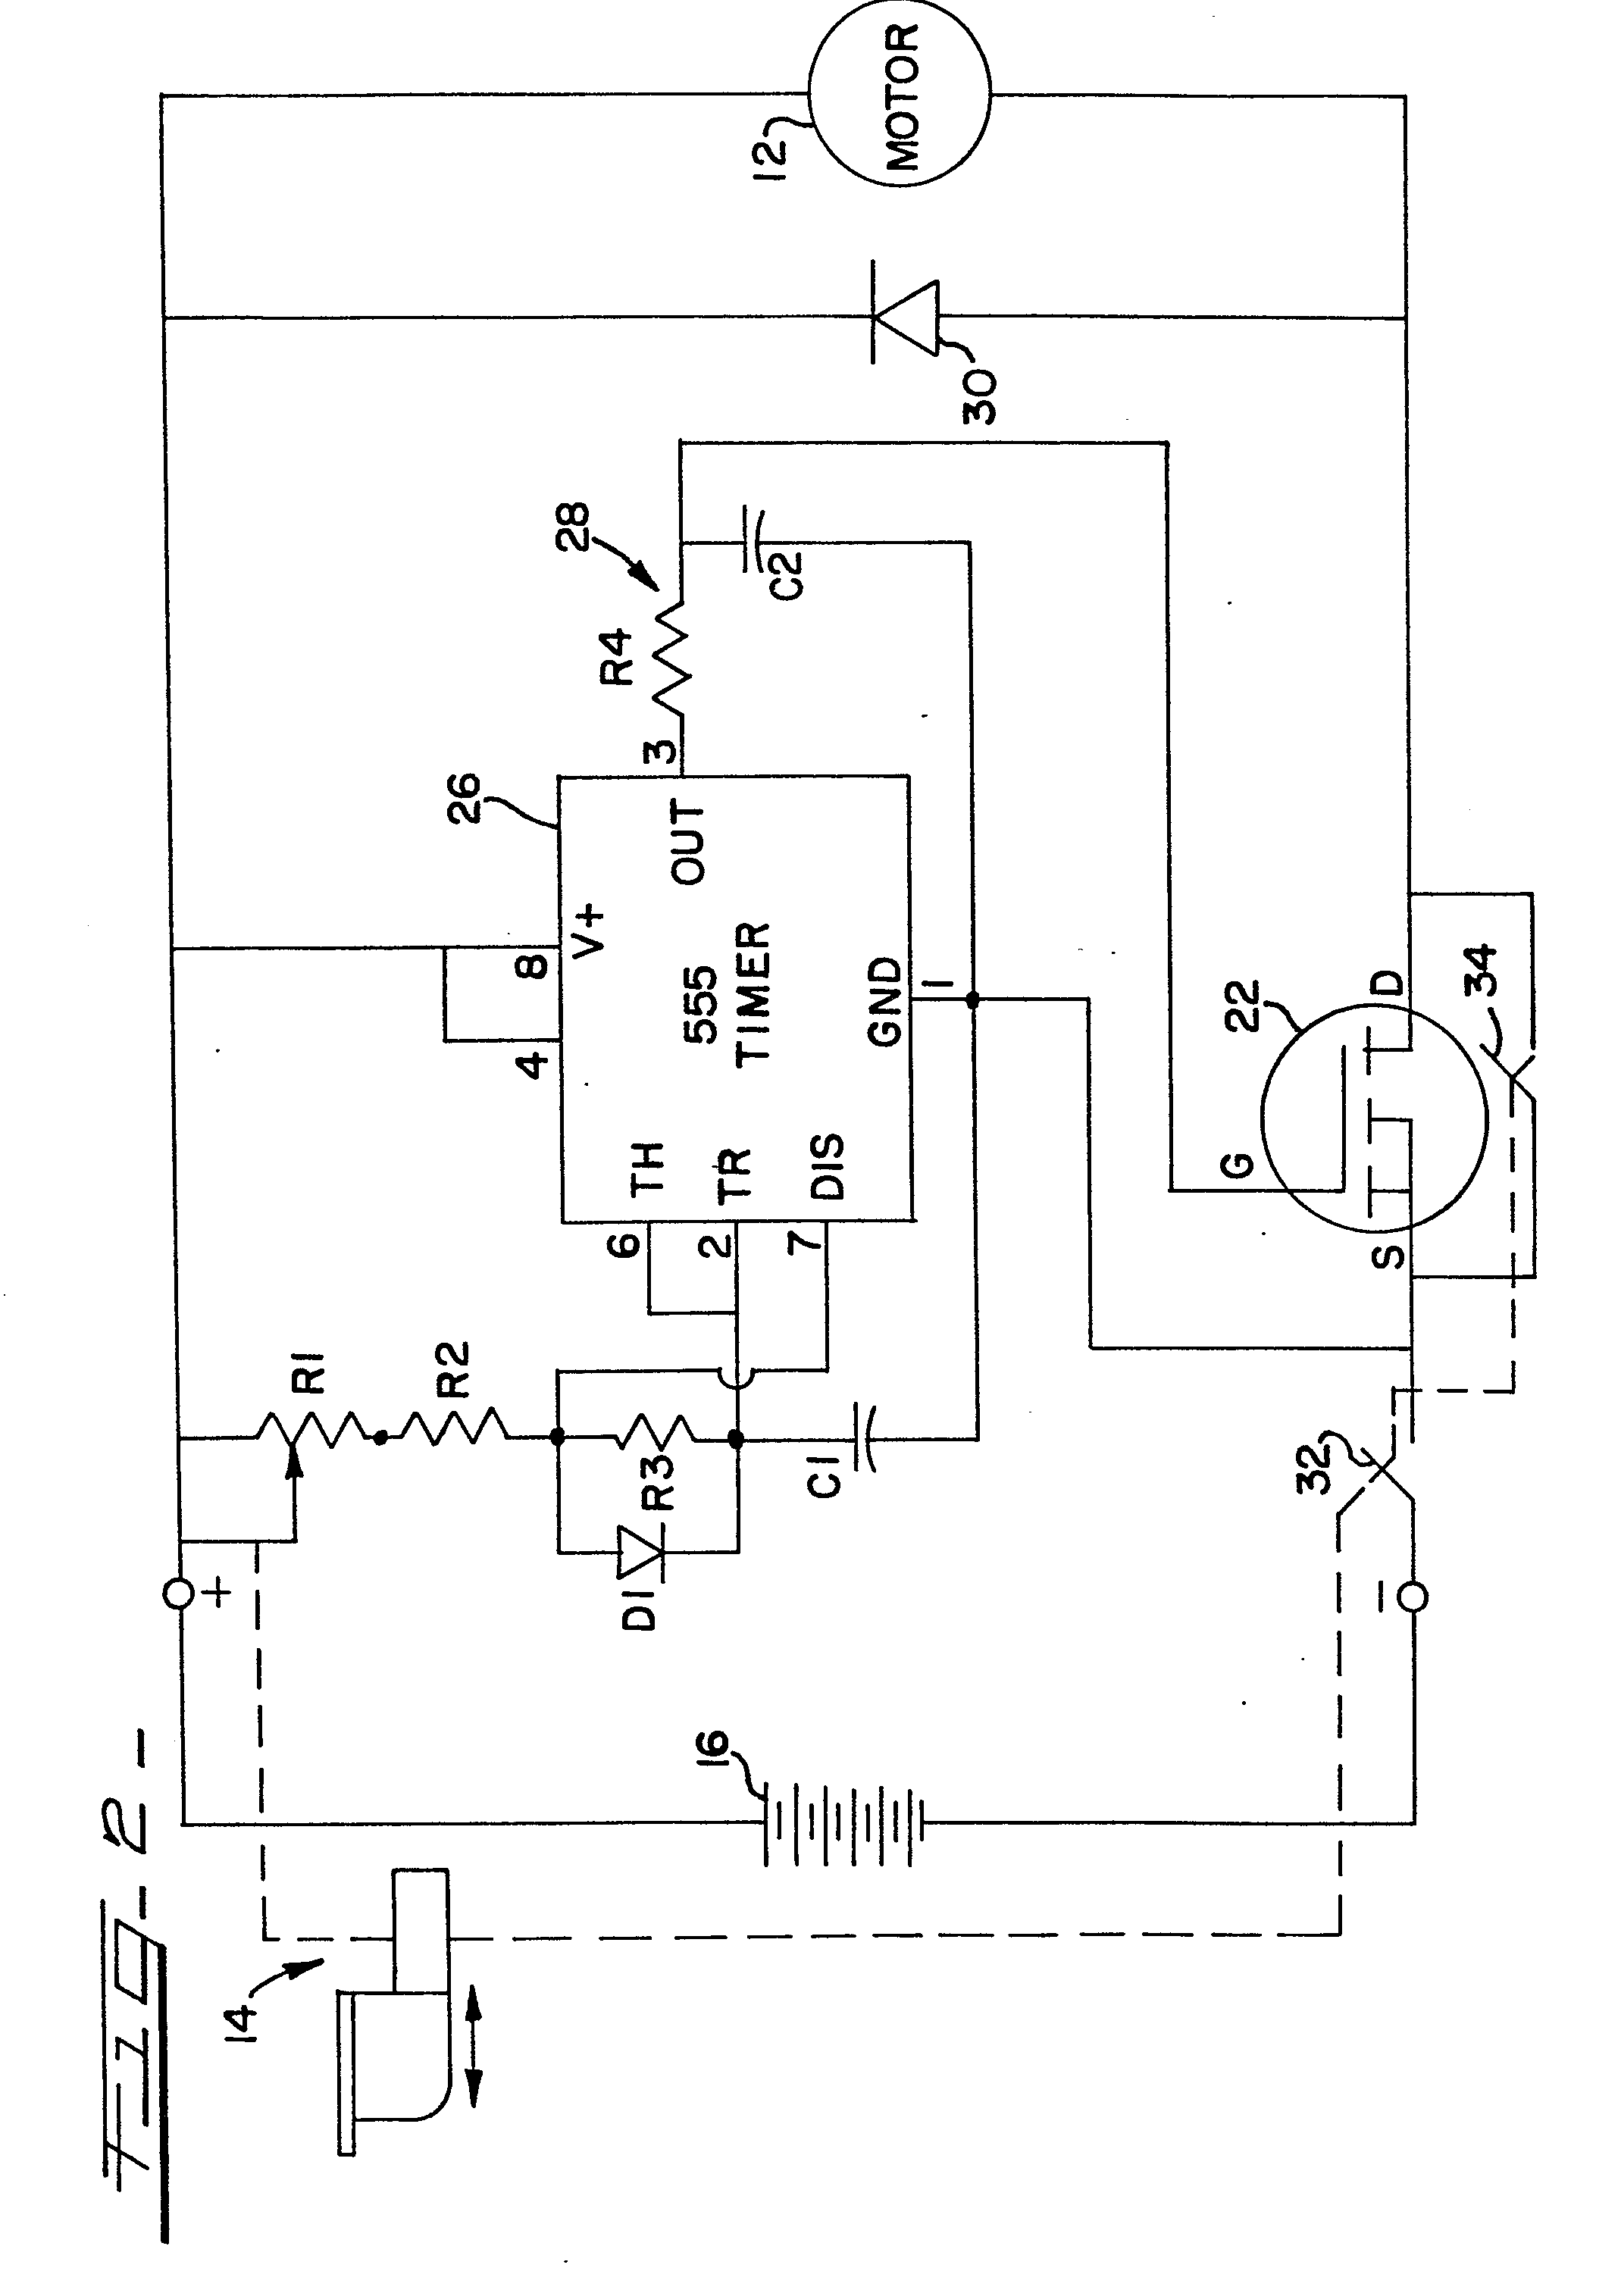 Speed Control For Power Tools Having A Dc Motor Patent 0076039 This Circuit Will Remove The Transient Spikes And Contact Bounces From Drawing